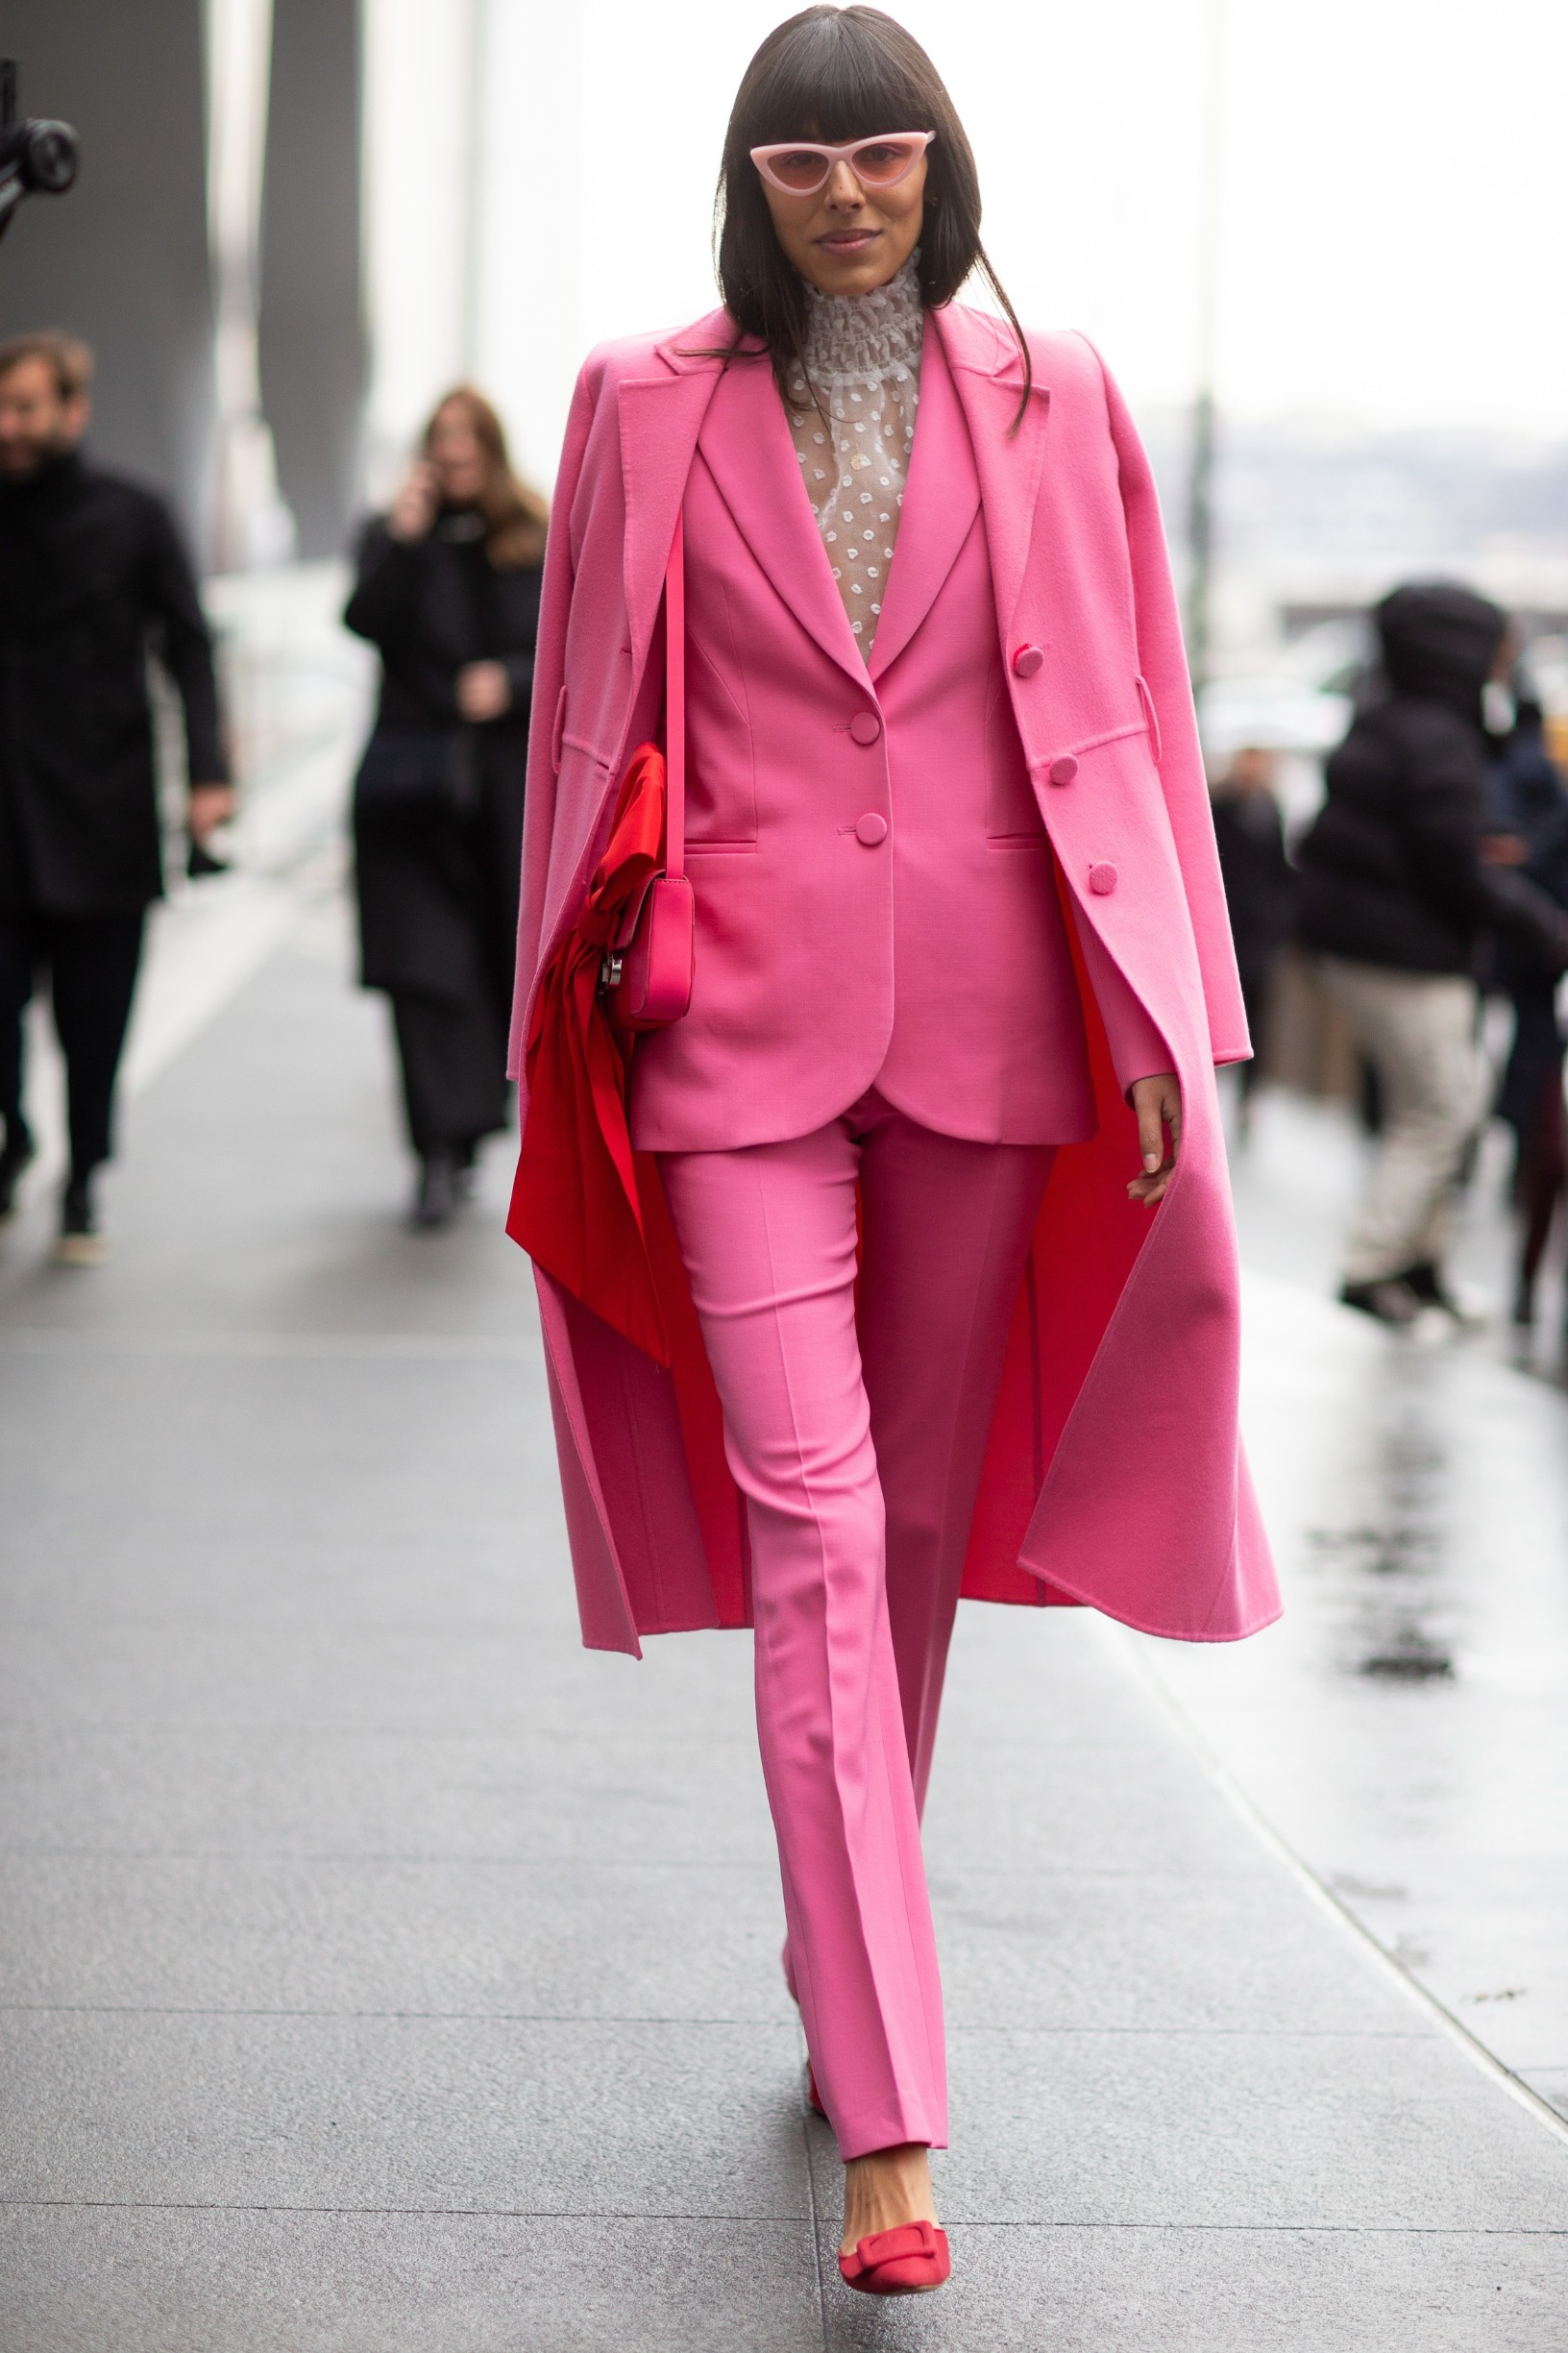 Street Style Street Style, Fall Winter 2020, New York Fashion Week, USA - 10 Feb 2020, Image: 497743392, License: Rights-managed, Restrictions: , Model Release: no, Credit line: Photoeventshd / Shutterstock Editorial / Profimedia